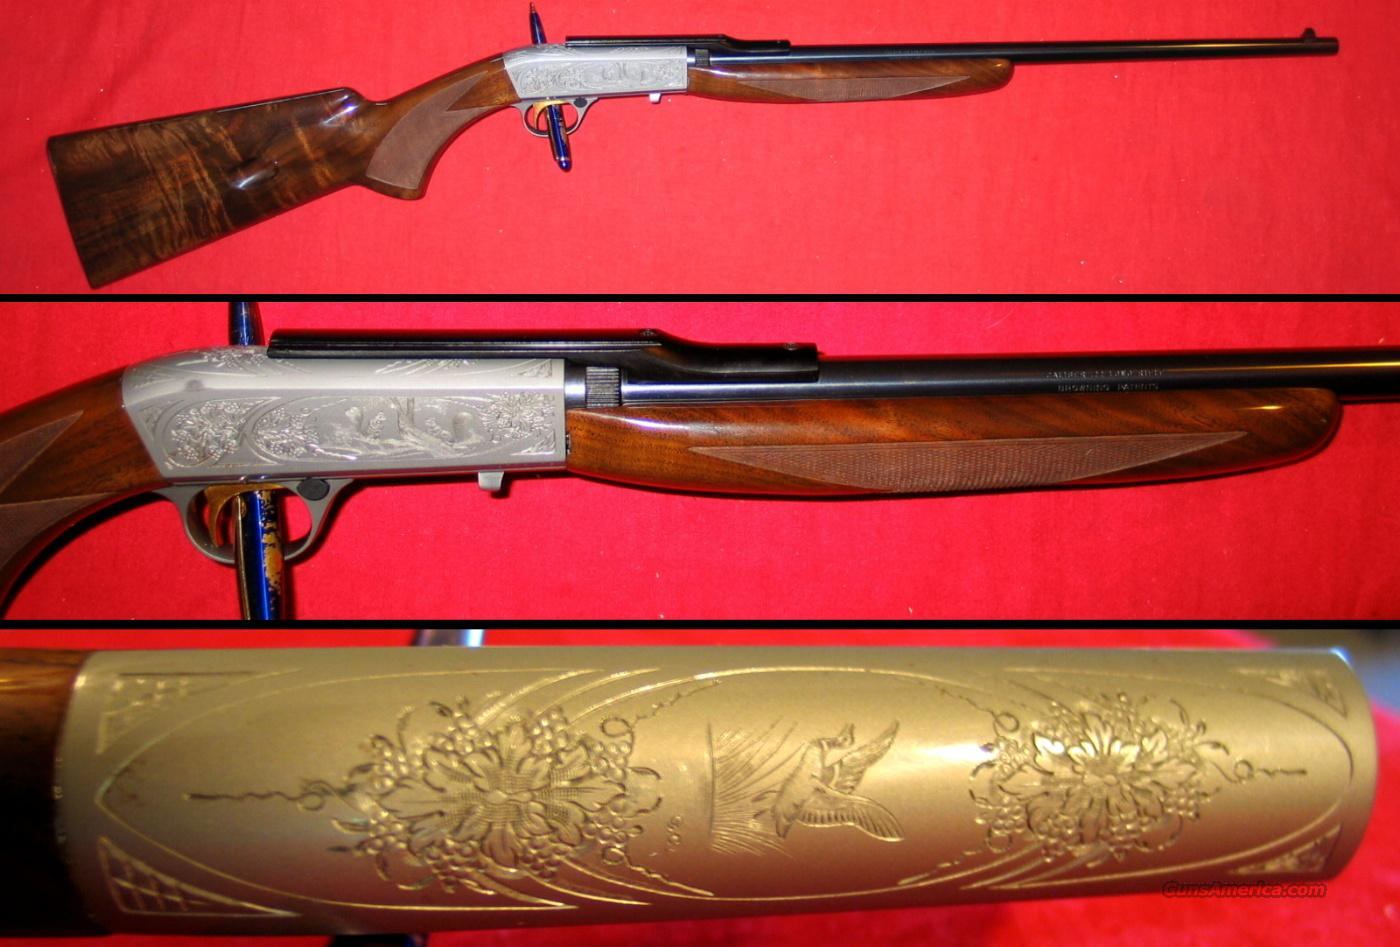 Auto-22 Belgium Gr. II - .22LR By G. Cockran  Guns > Rifles > Browning Rifles > Semi Auto > Hunting